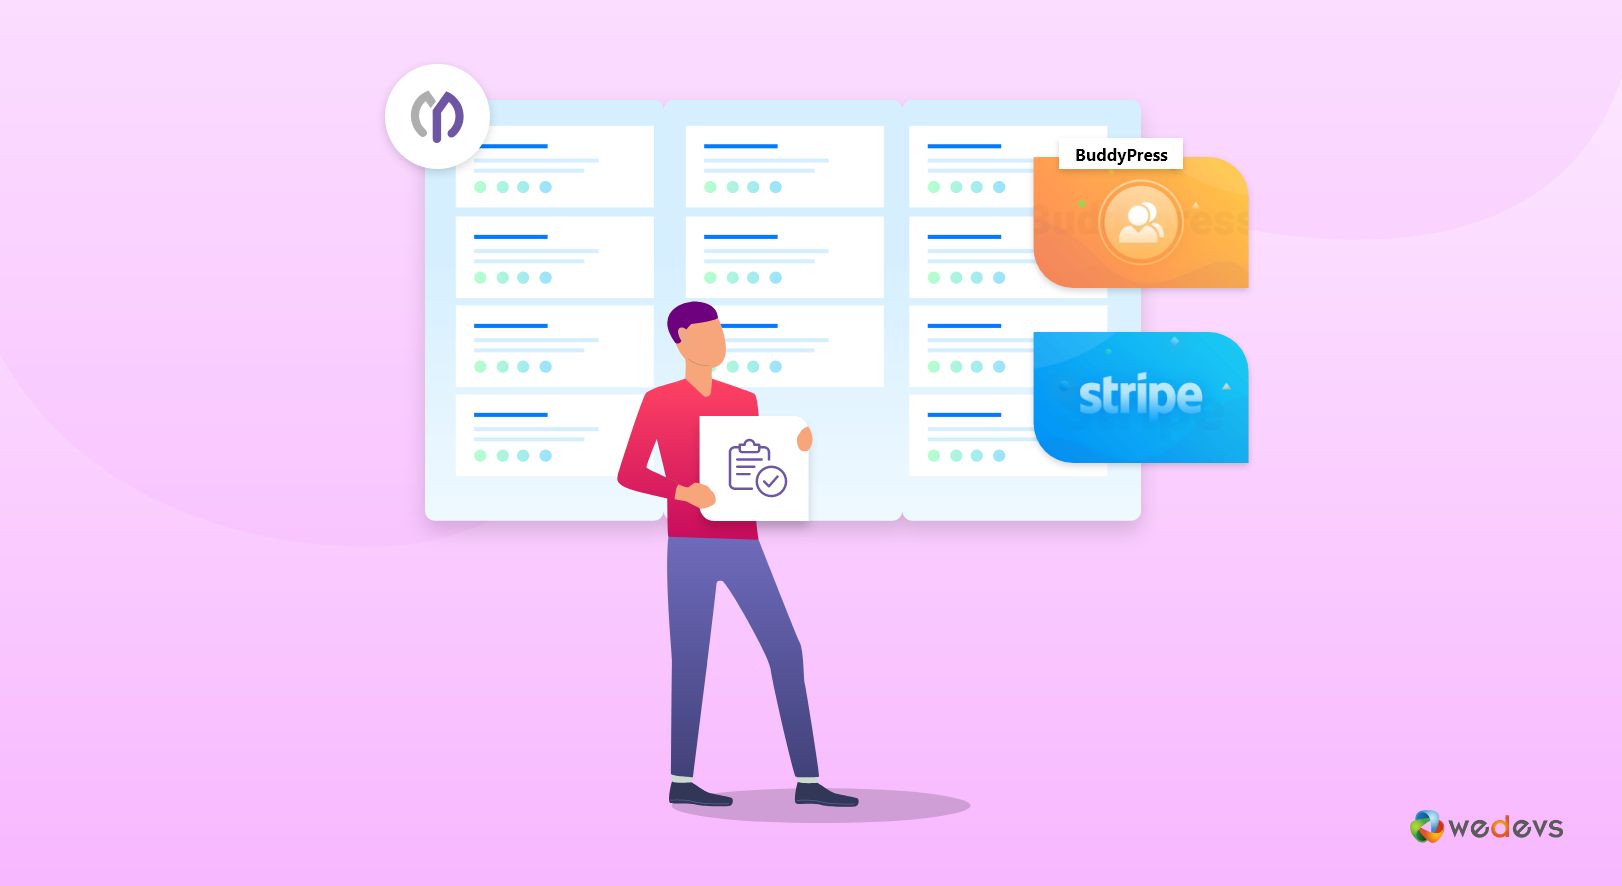 BuddyPress Project Management & Stripe Payment Gateway Integration With WP Project Manager(Complete User Guide)